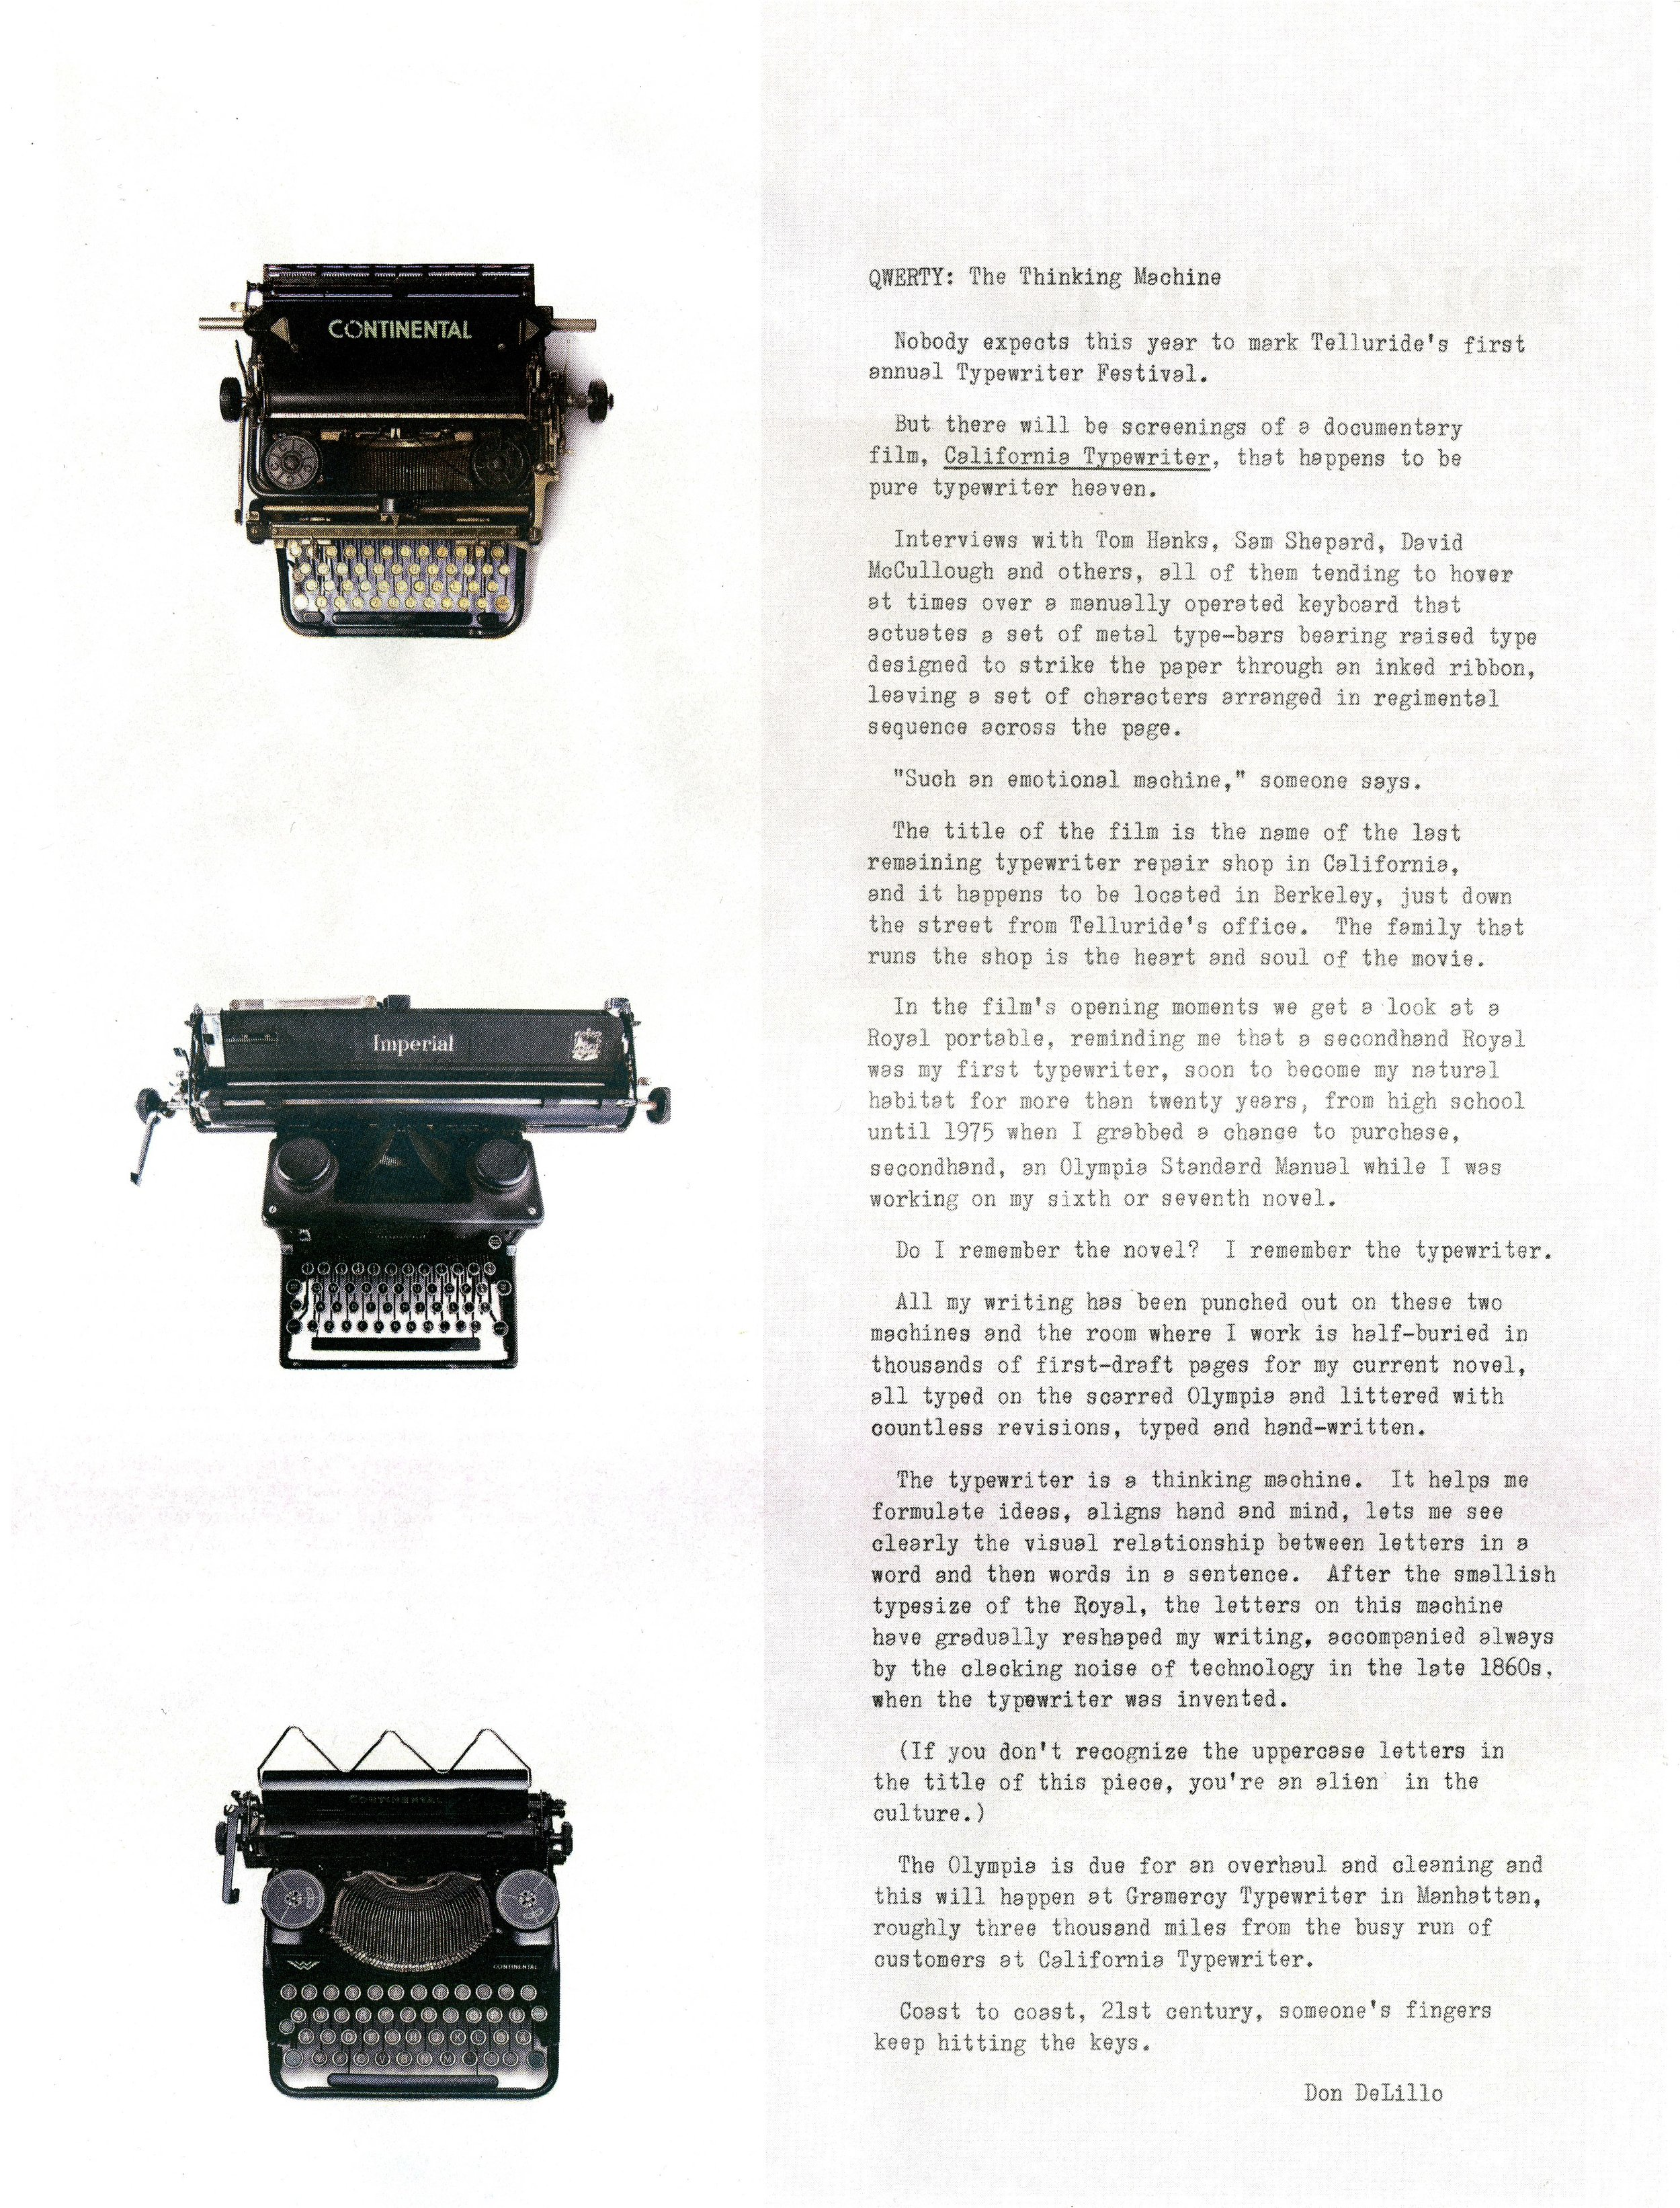 Don DeLillo - QWERTY: The Thinking Machine